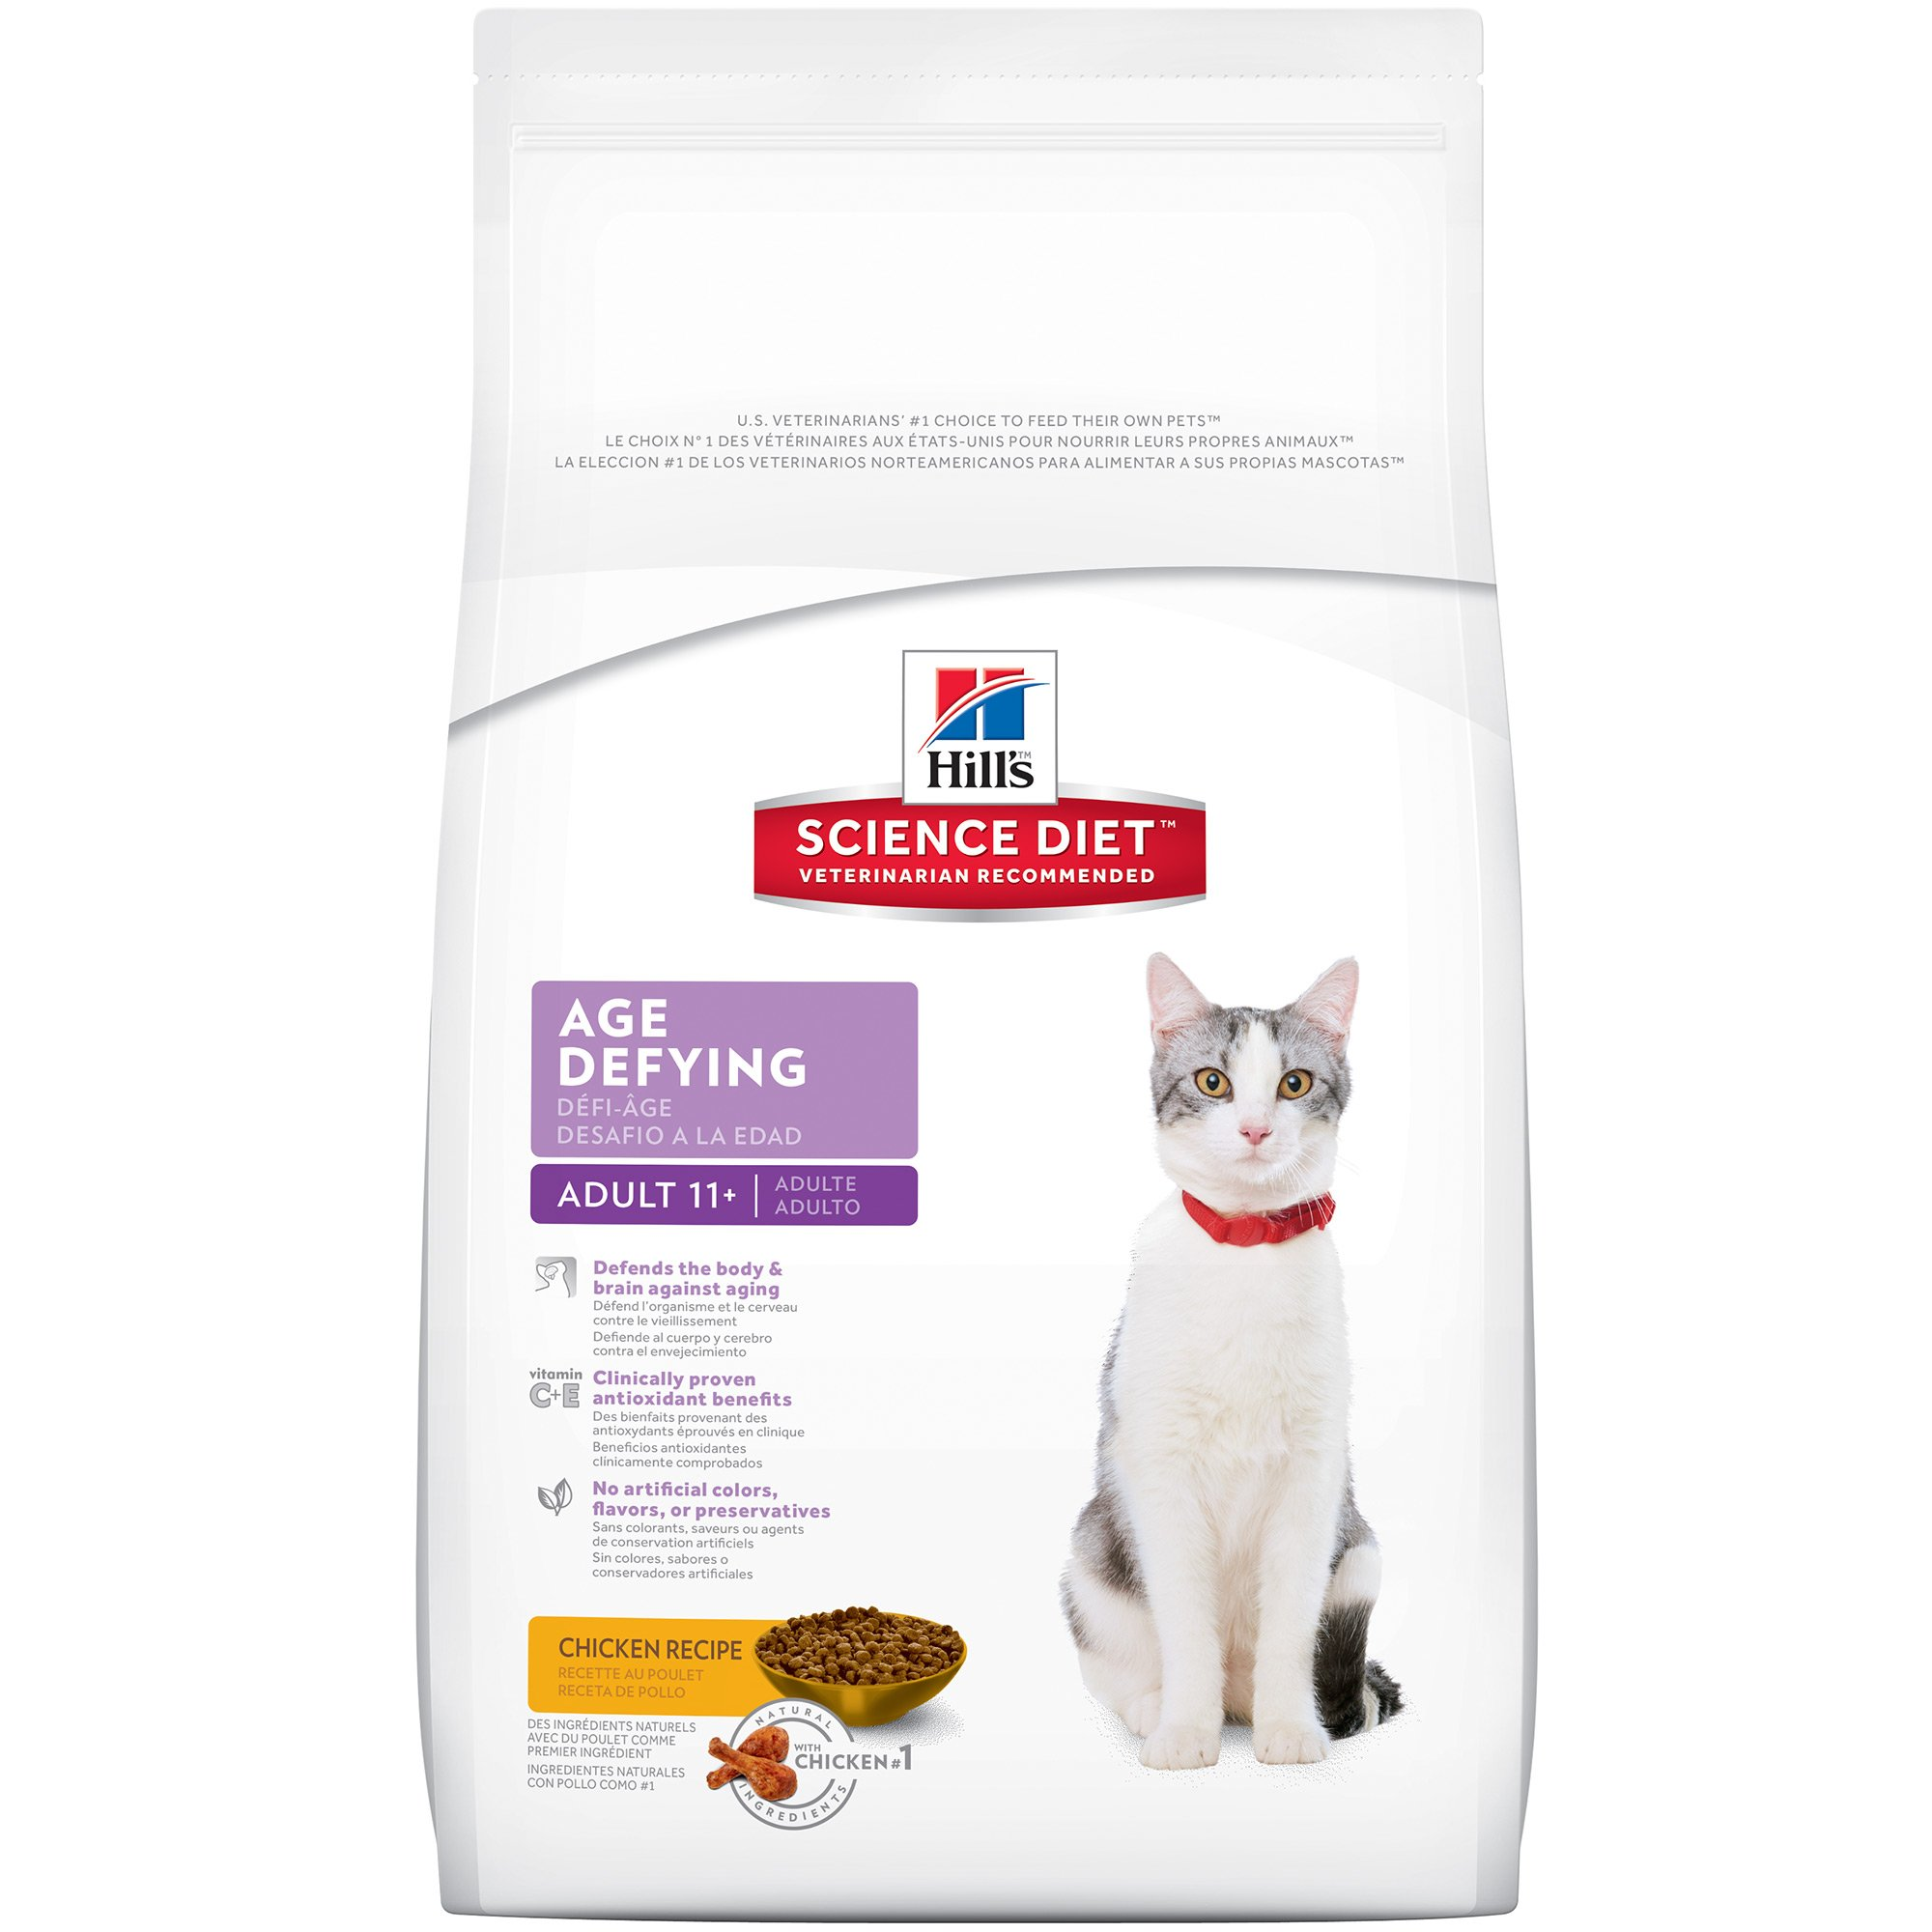 Hill's Science Diet Senior Dry Cat Food, Adult 11+ Age Defying Chicken Recipe Pet Food, 15.5 lb Bag